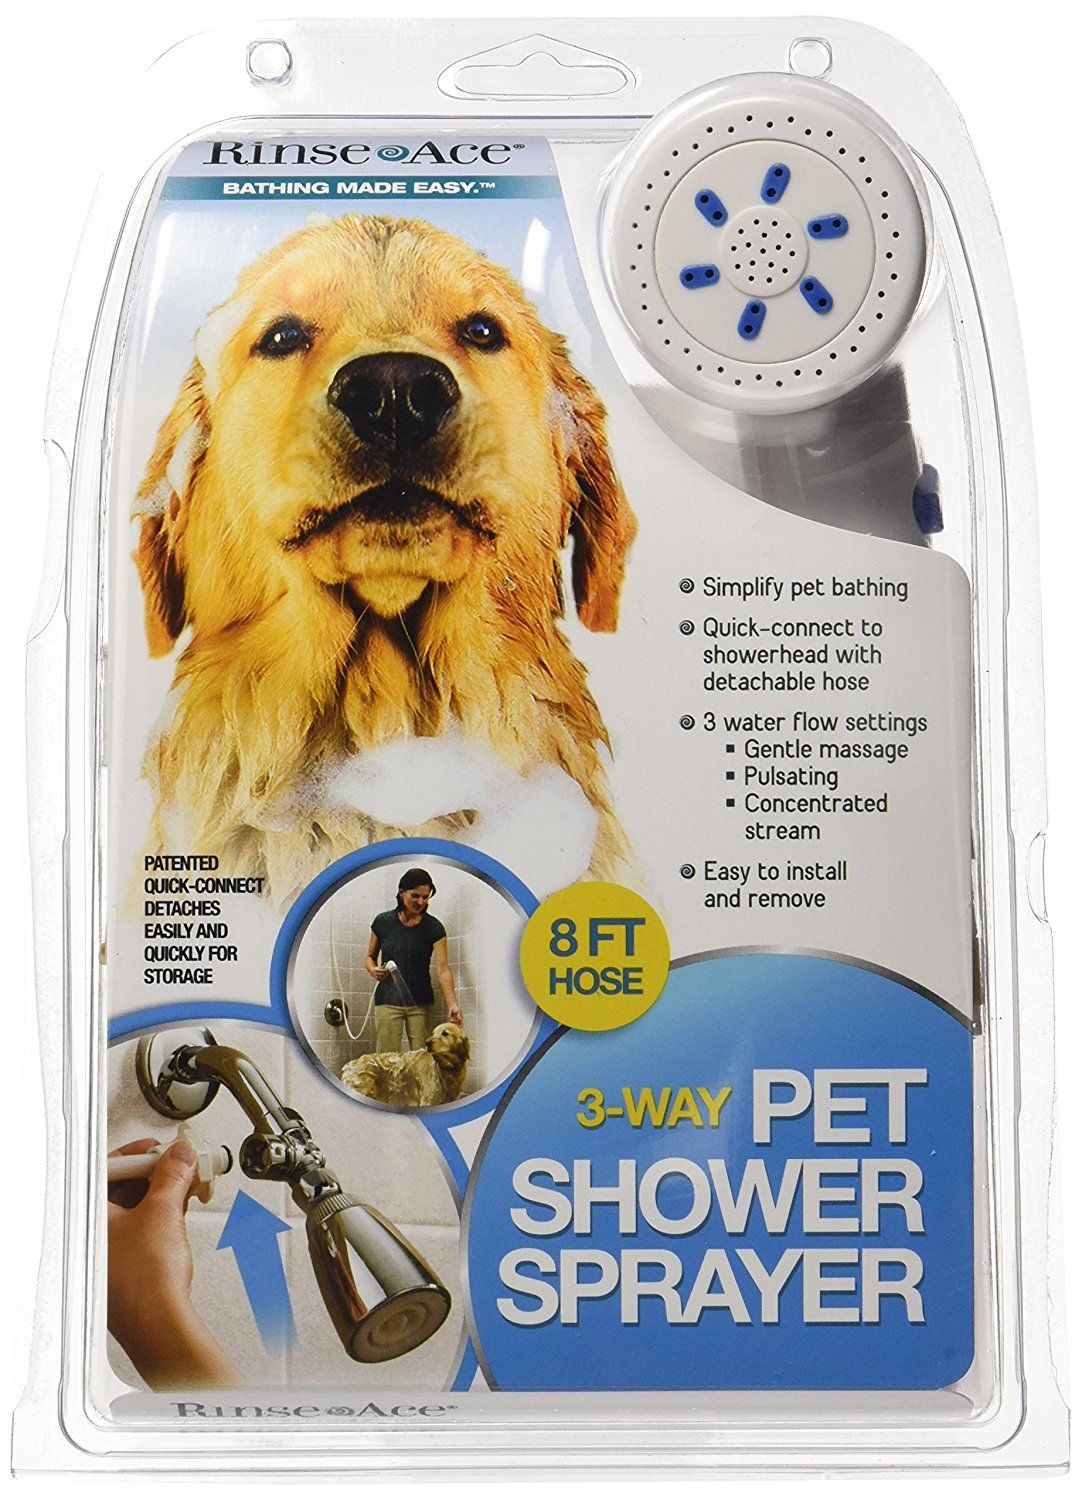 Rinse Ace 3 Way Pet Shower Sprayer With 8 Foot Hose And Quick Connect To Showerhead Review More Details Here This Is An Dog Bath Dog Shower Pets